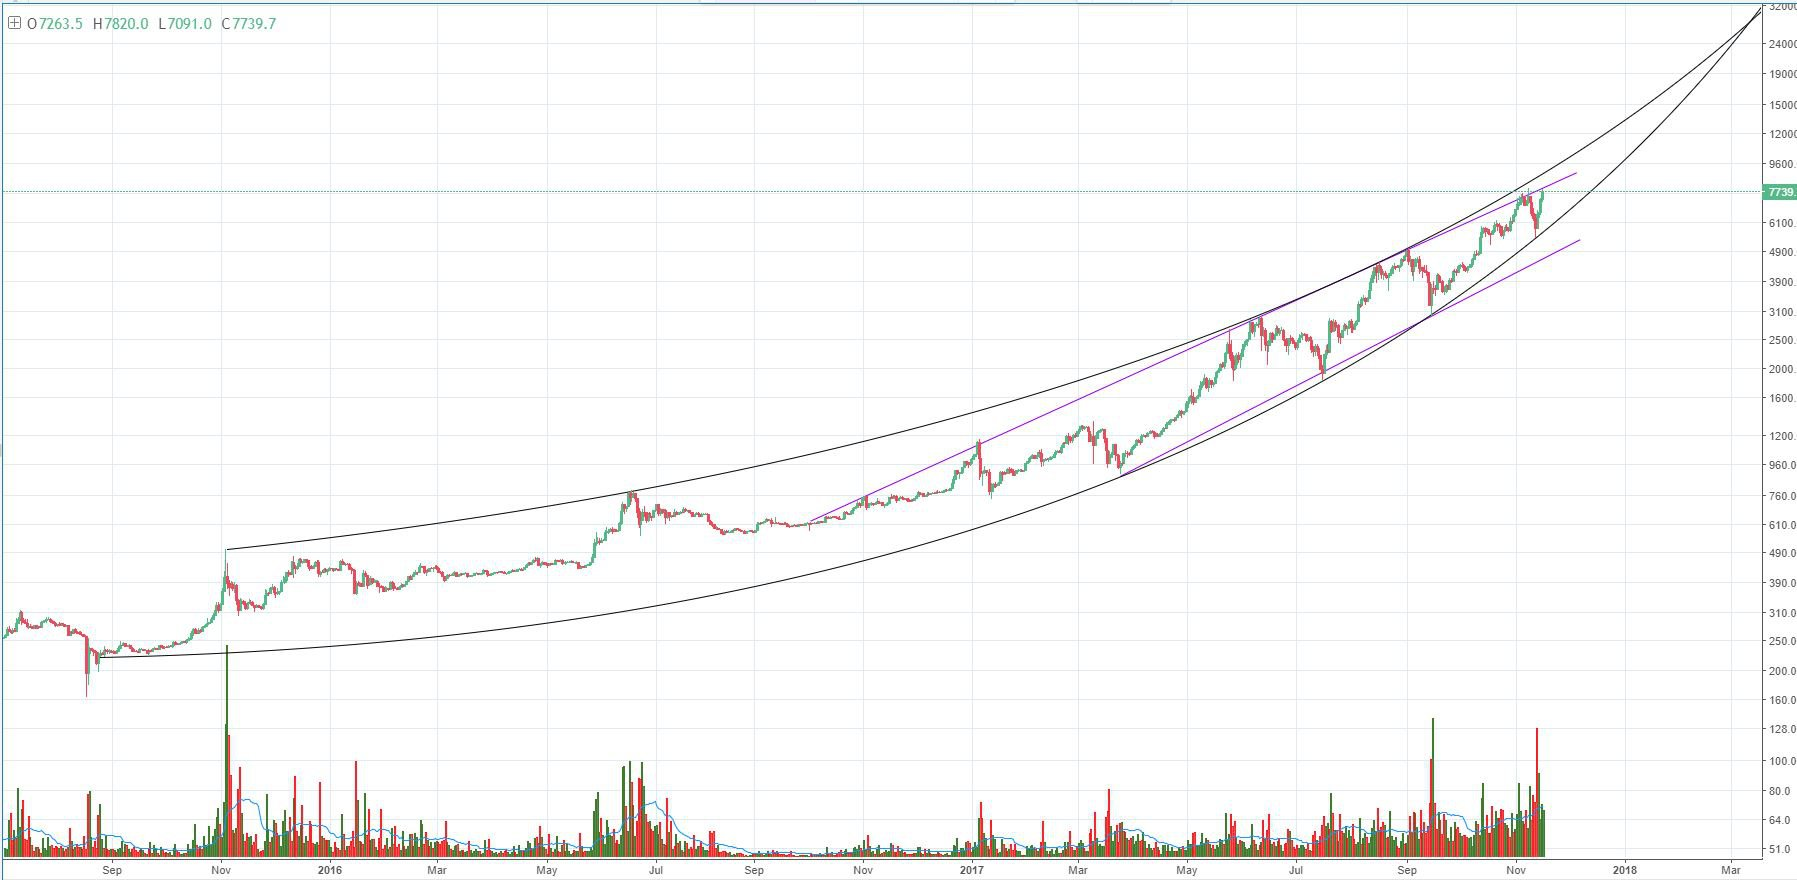 Figure 1 Btc Usd Day Candles Macro Trend